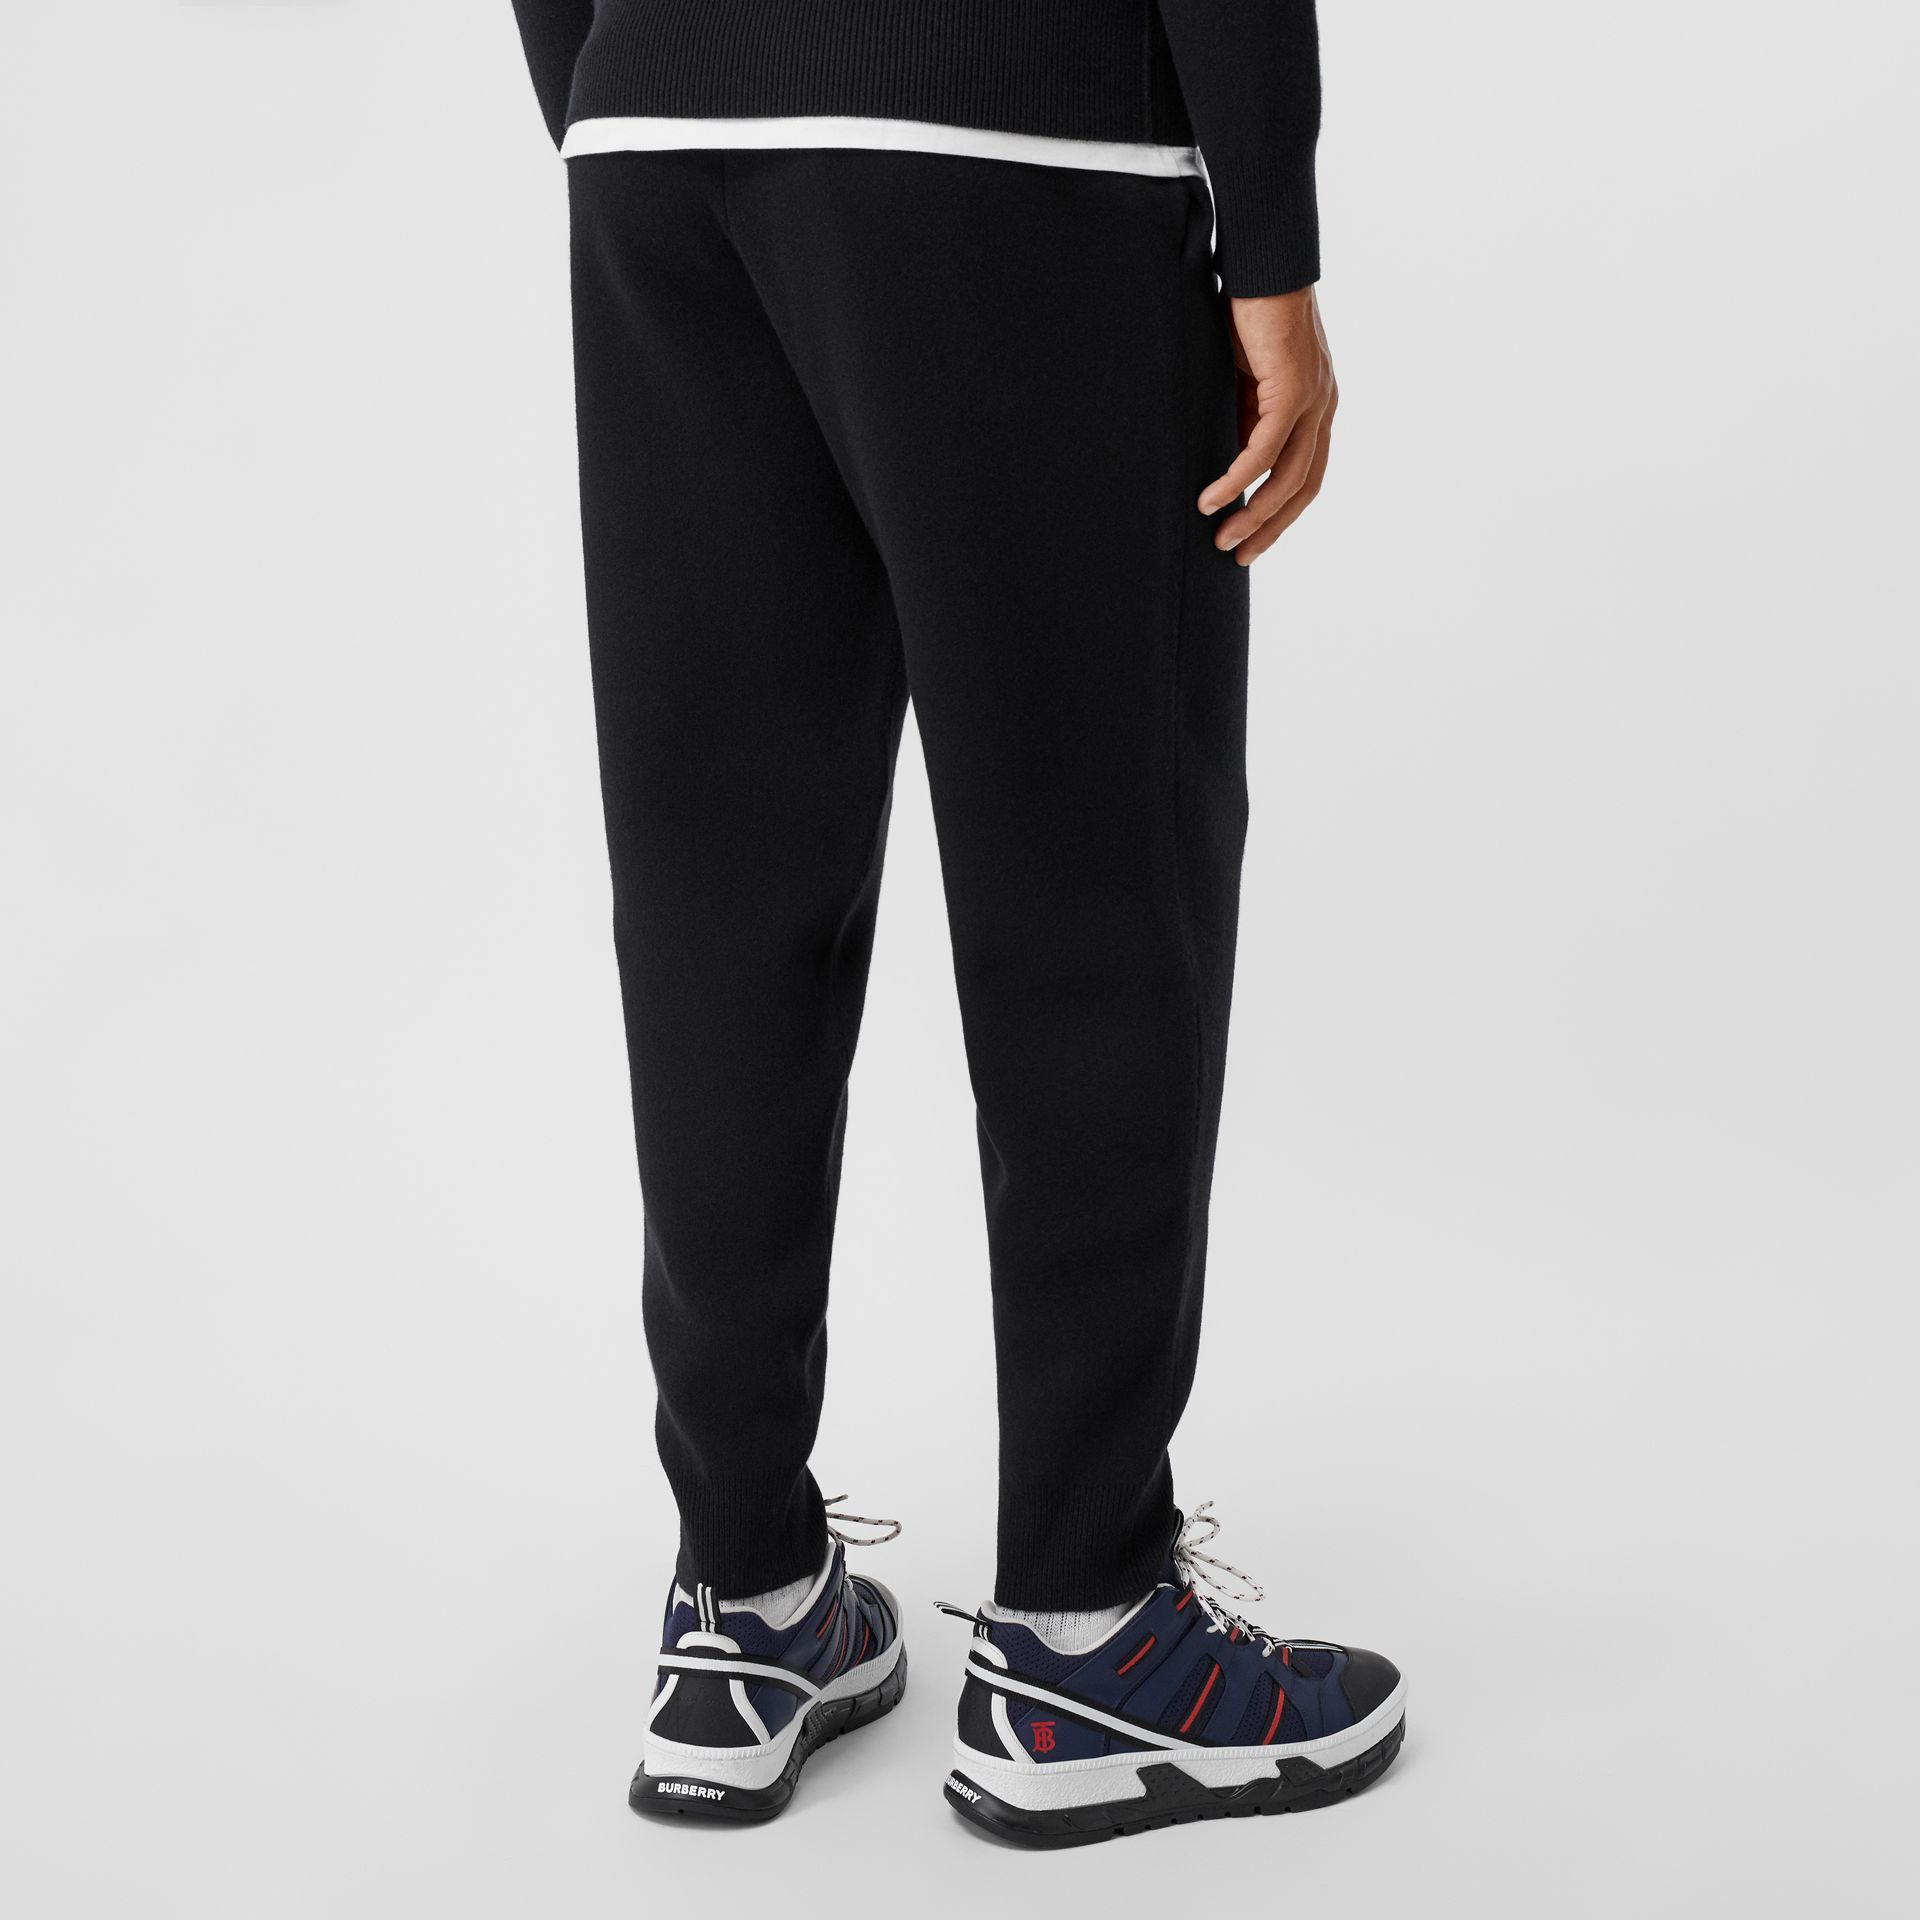 Monogram Motif Cashmere Blend Trackpants in Black - Men | Burberry - gallery image 2